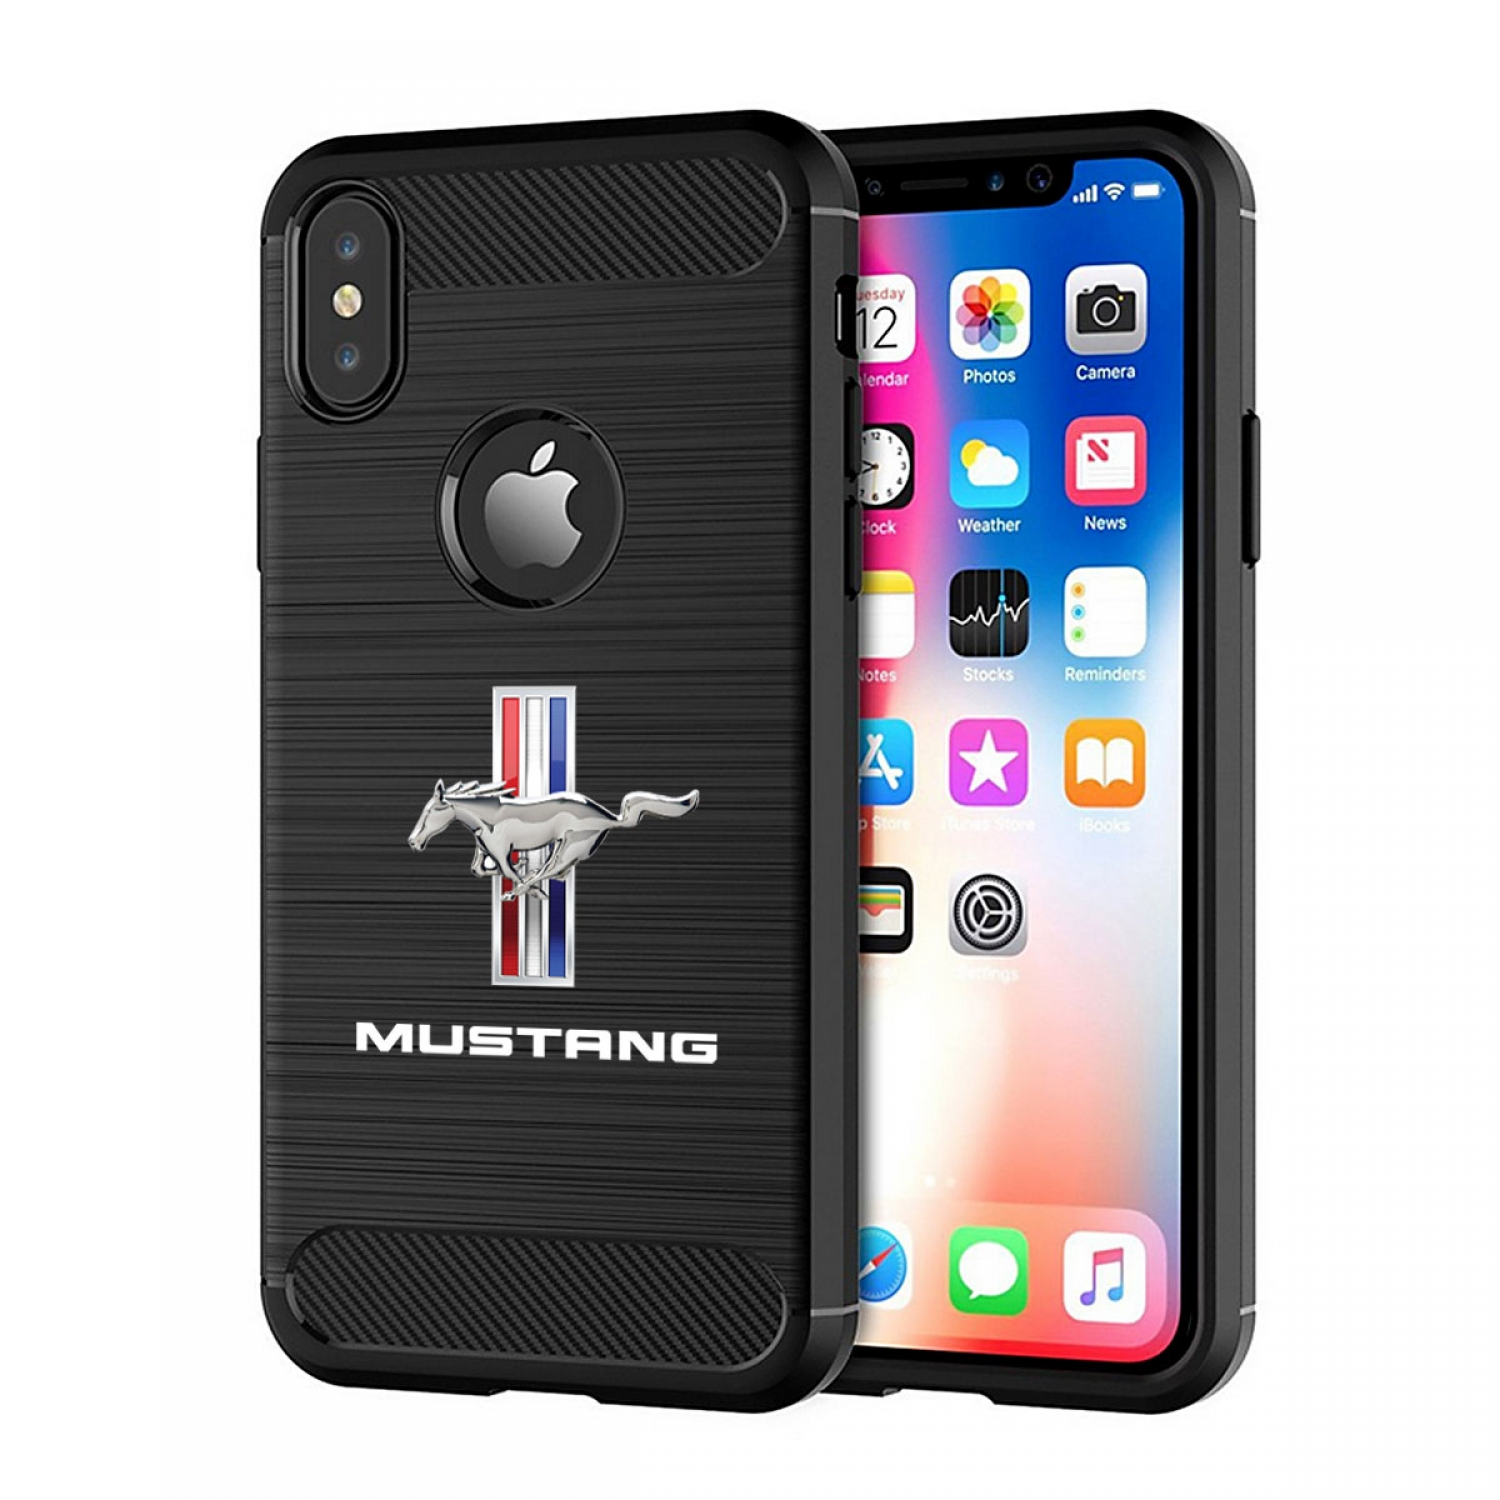 Ford Mustang Tri-Bar iPhone X TPU Shockproof Black Carbon Fiber Textures Stripes Cell Phone Case